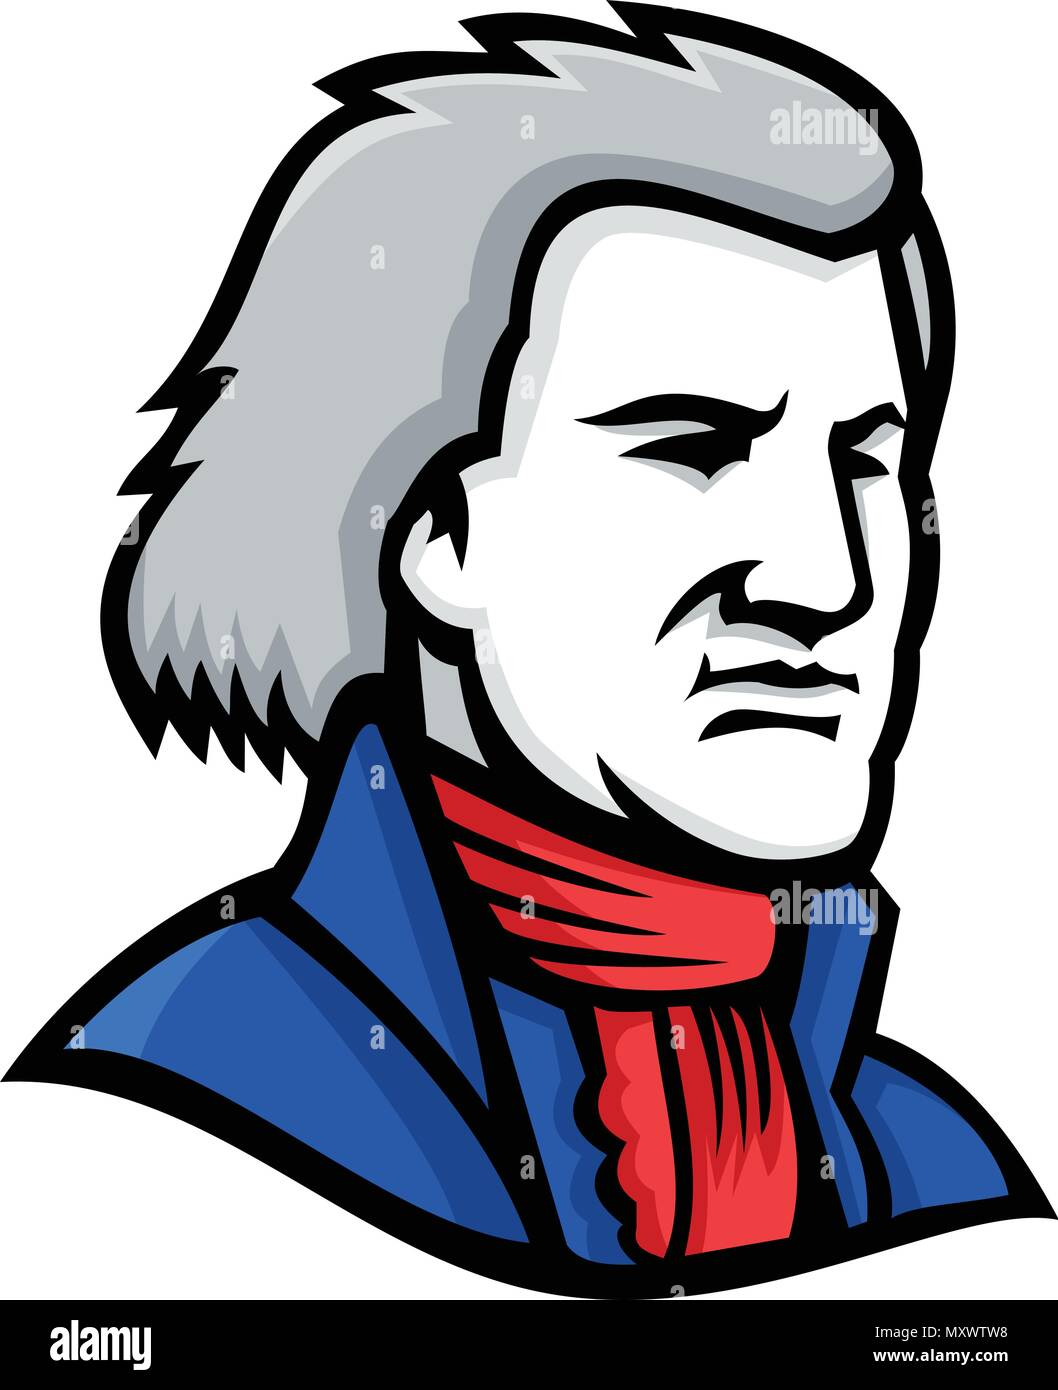 Thomas jefferson cartoon stock photos thomas jefferson cartoon